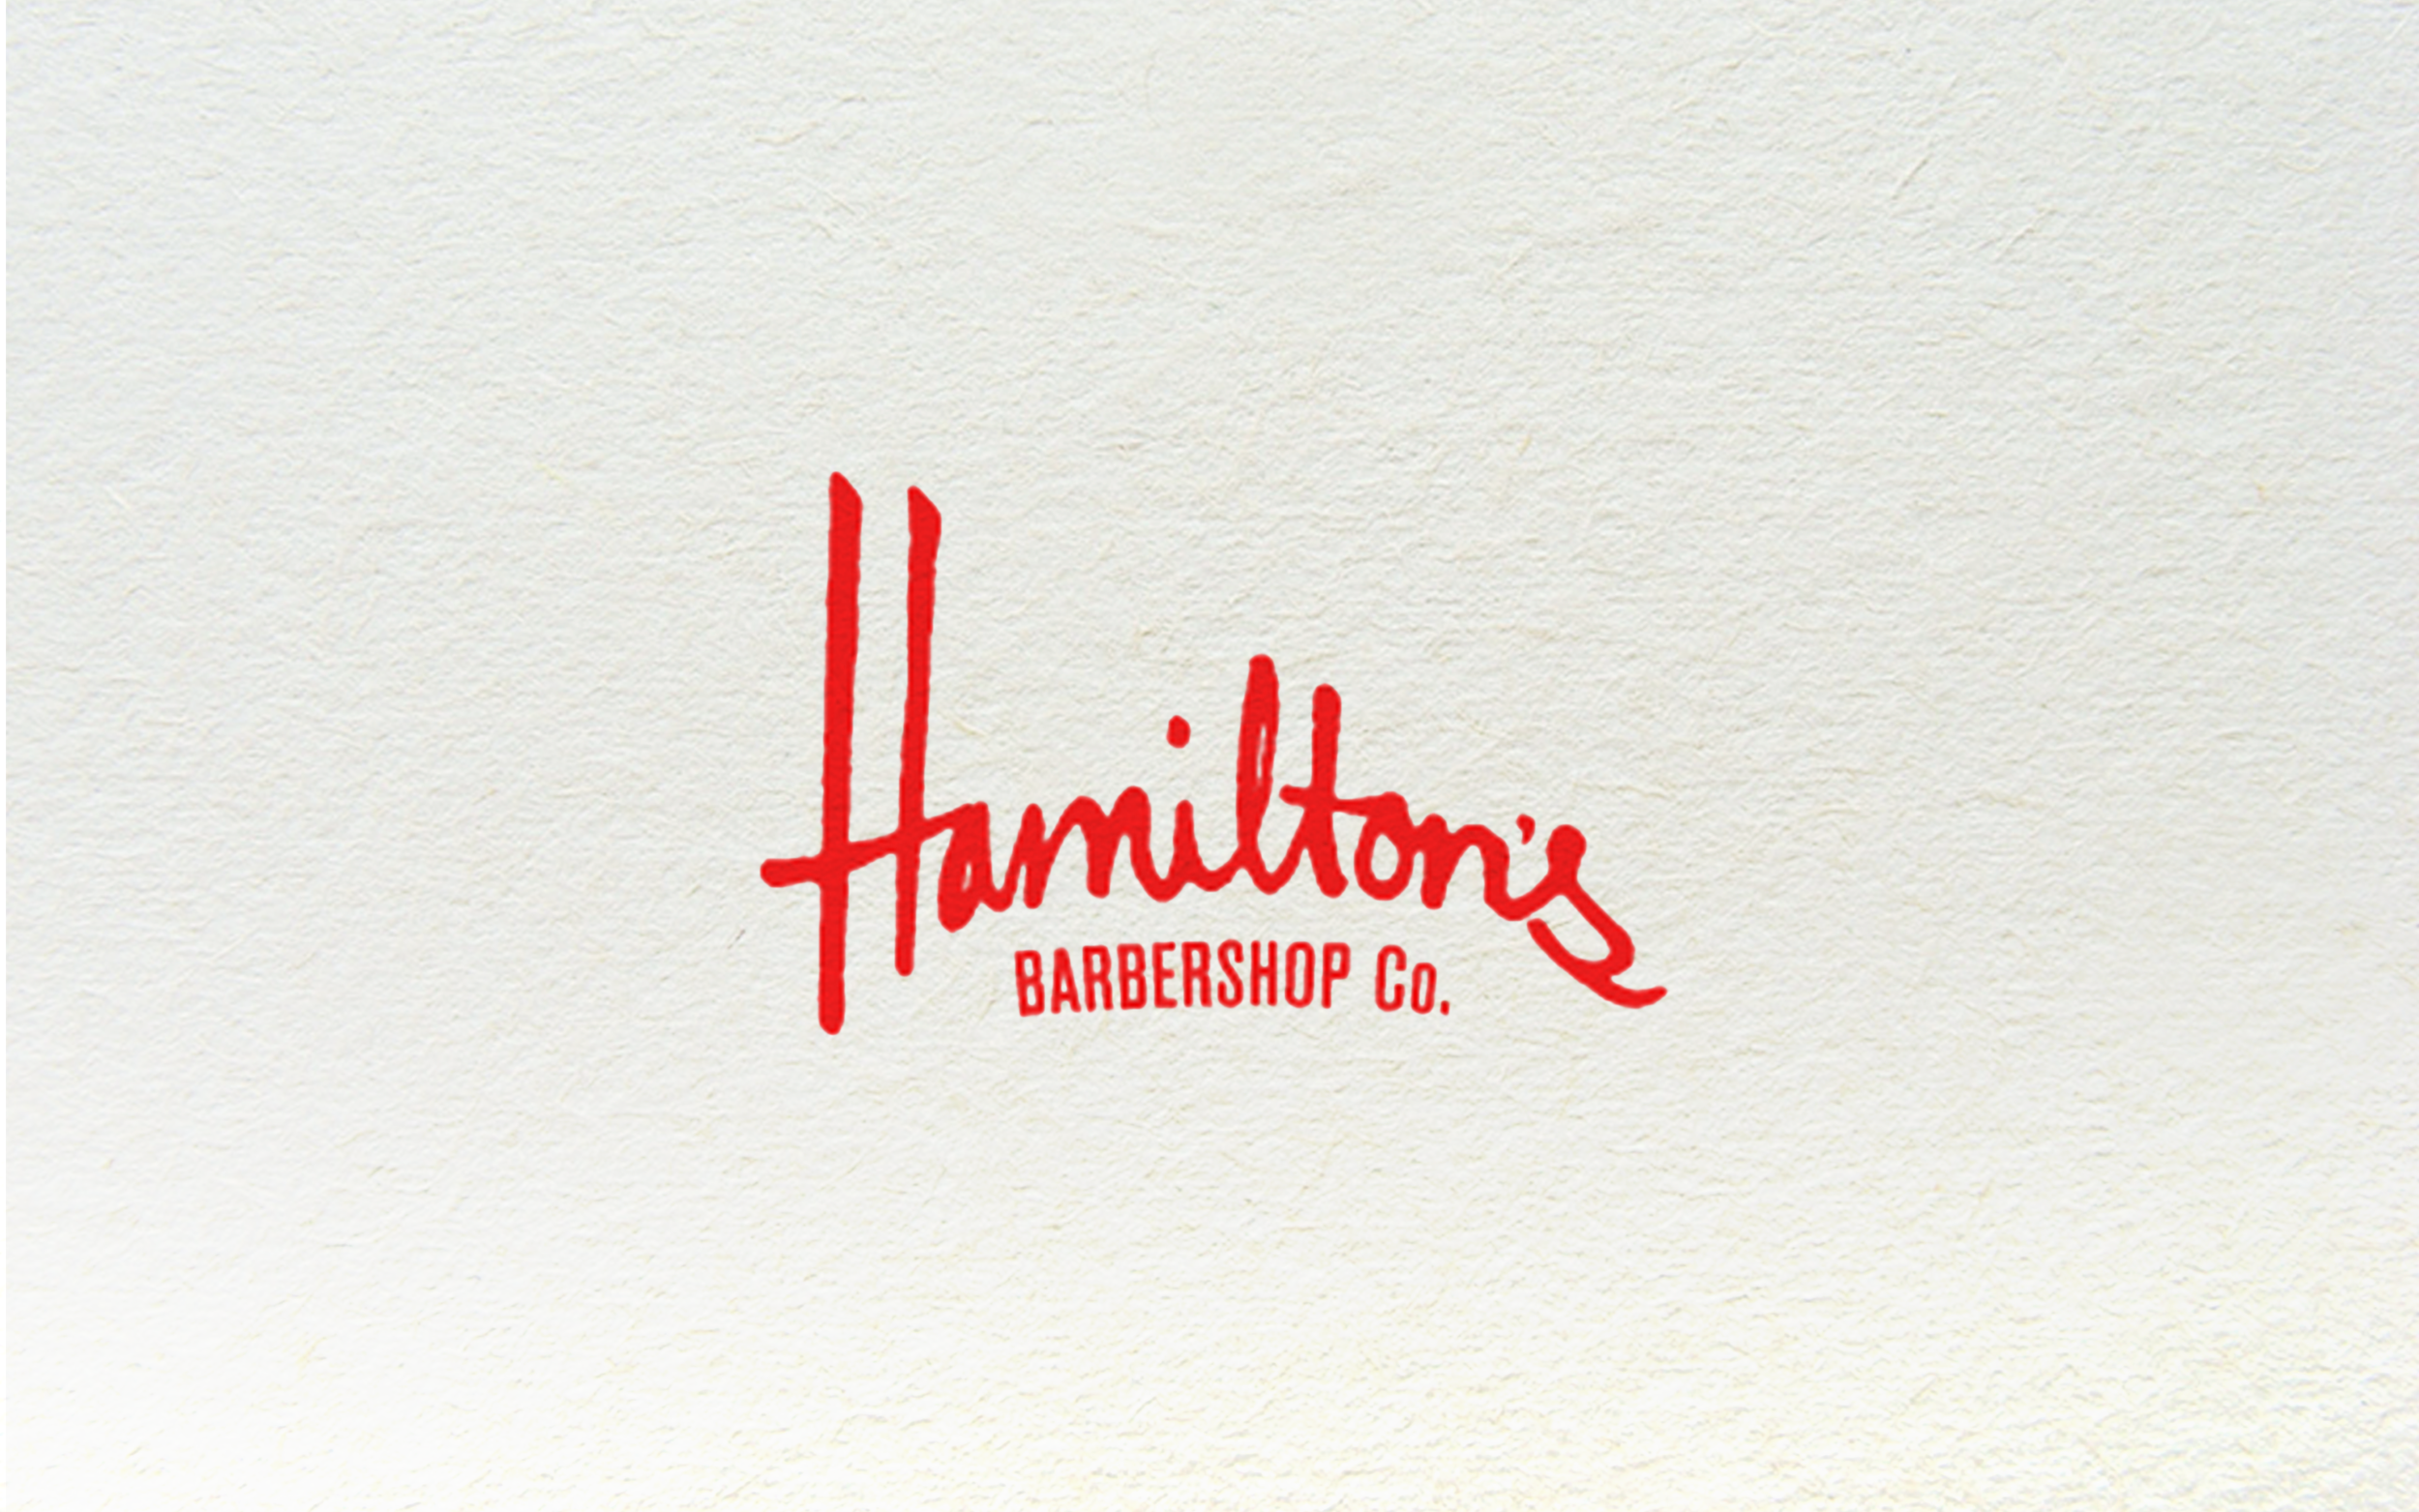 ss_project detail_hamiltons_logo_red.png